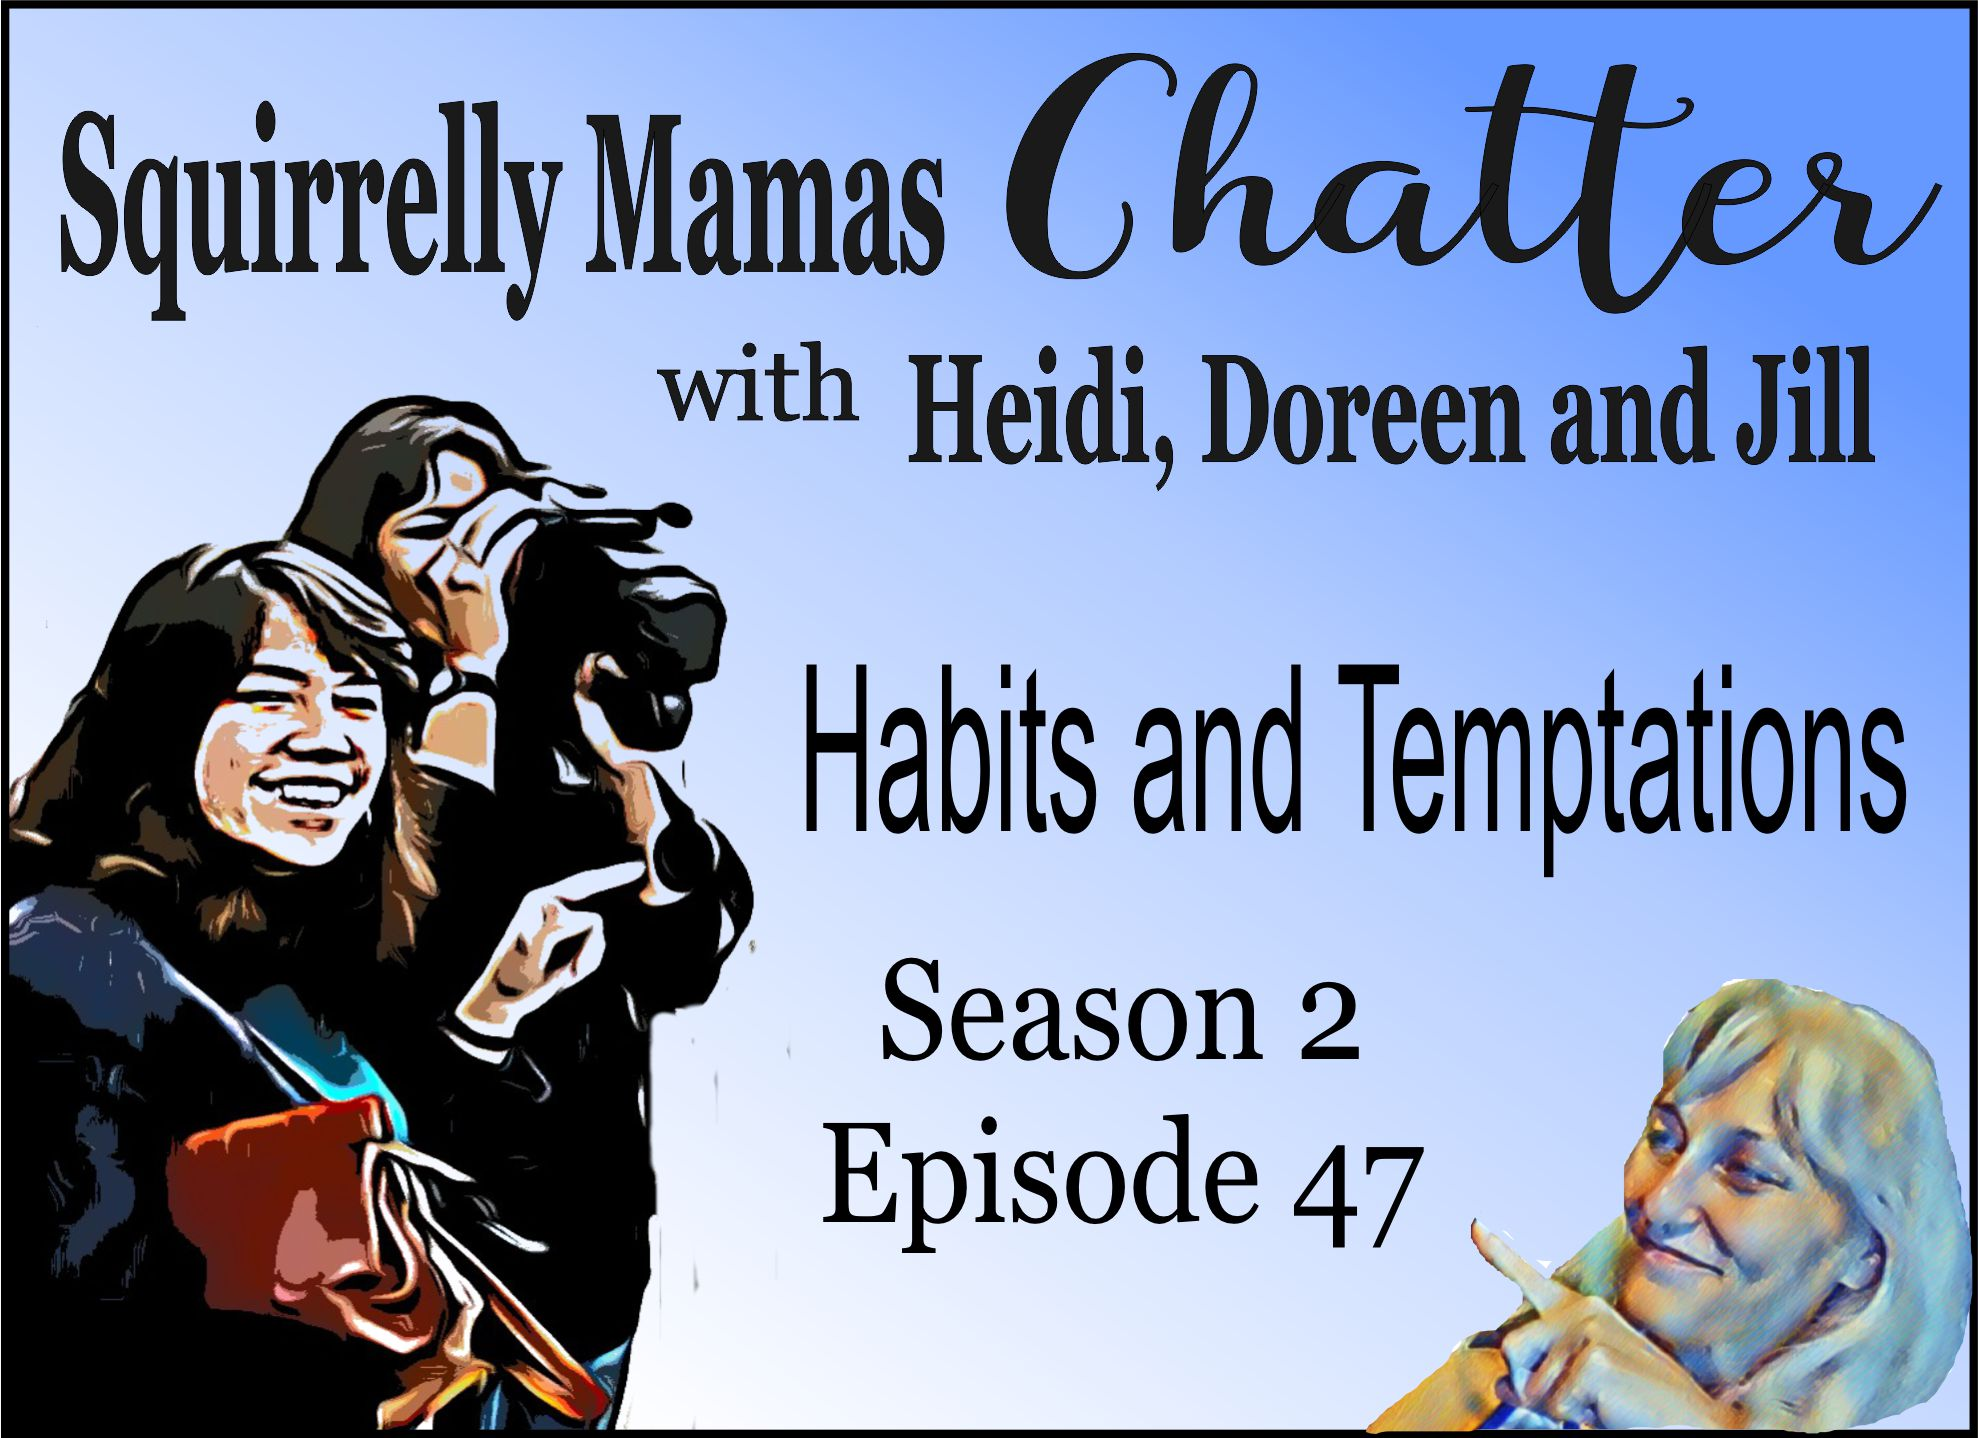 047 How to Maintain a Good Habit and Challenging to let go of Bad Habits because of Temptations